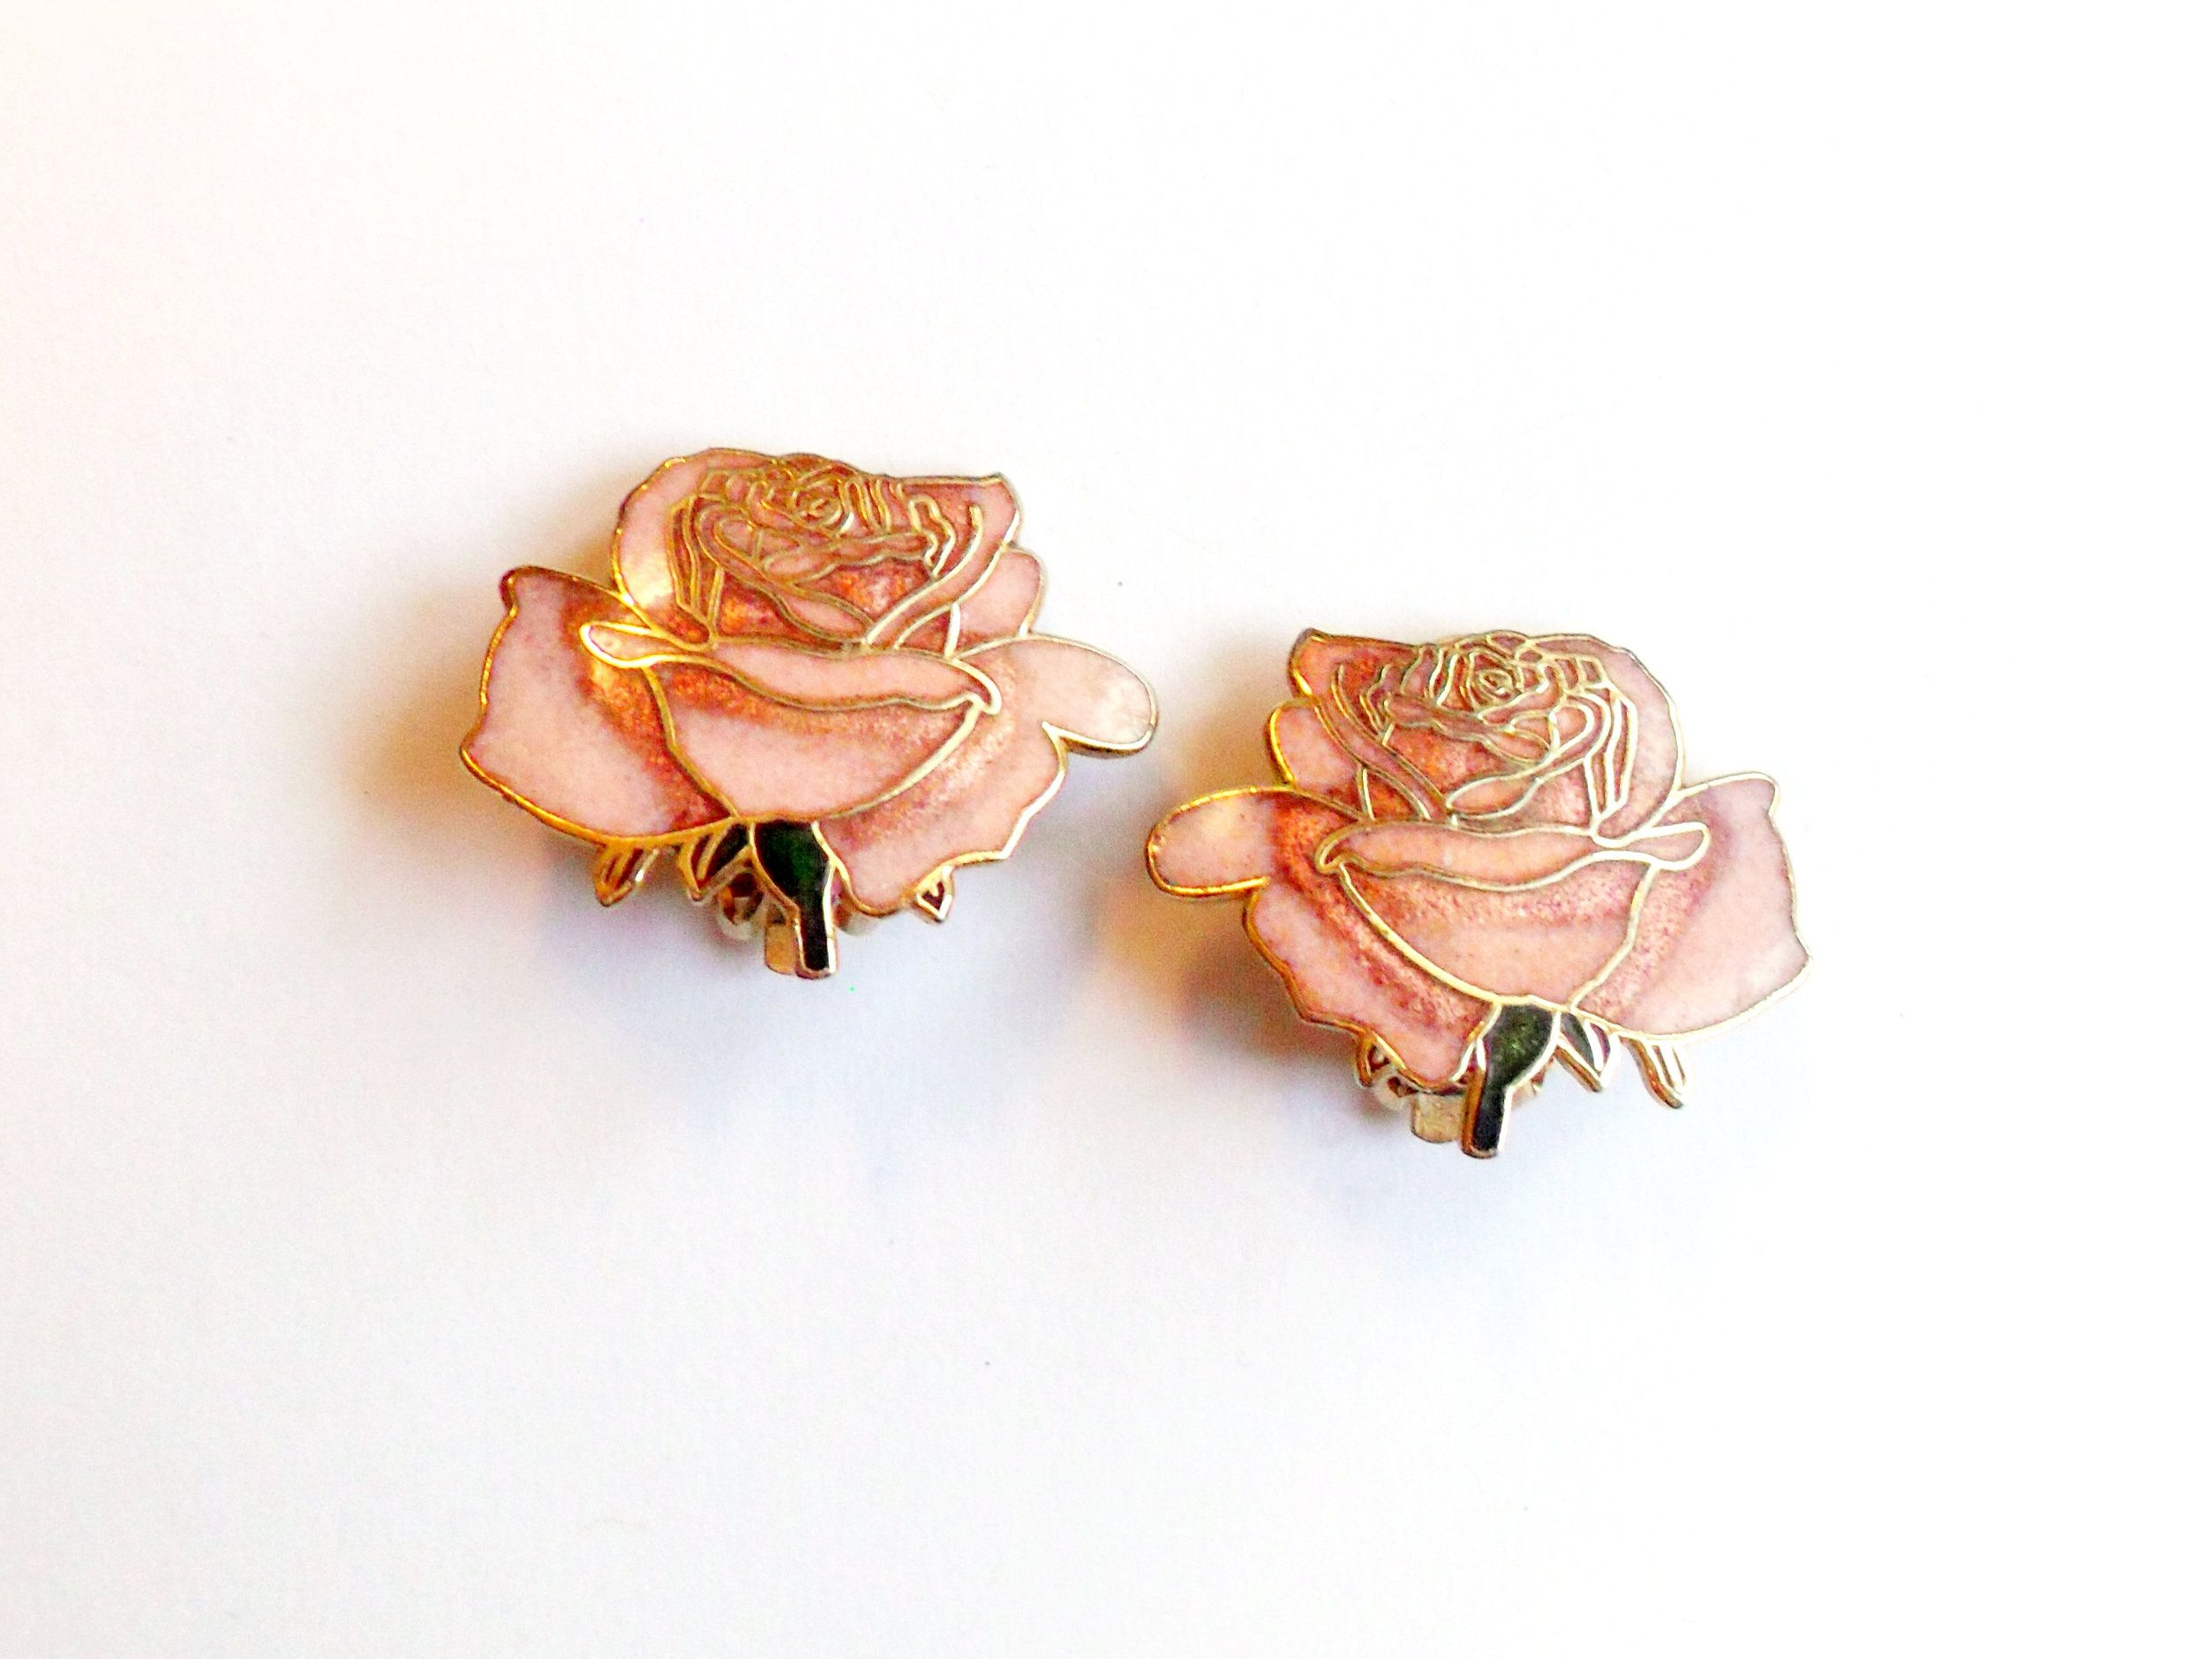 Pink Cloisonne Rose Earrings Vintage Clip On Romantic Enamel Flower Design Gold Tone Metal In 2020 Vintage Earrings Rose Earrings Enamel Flower